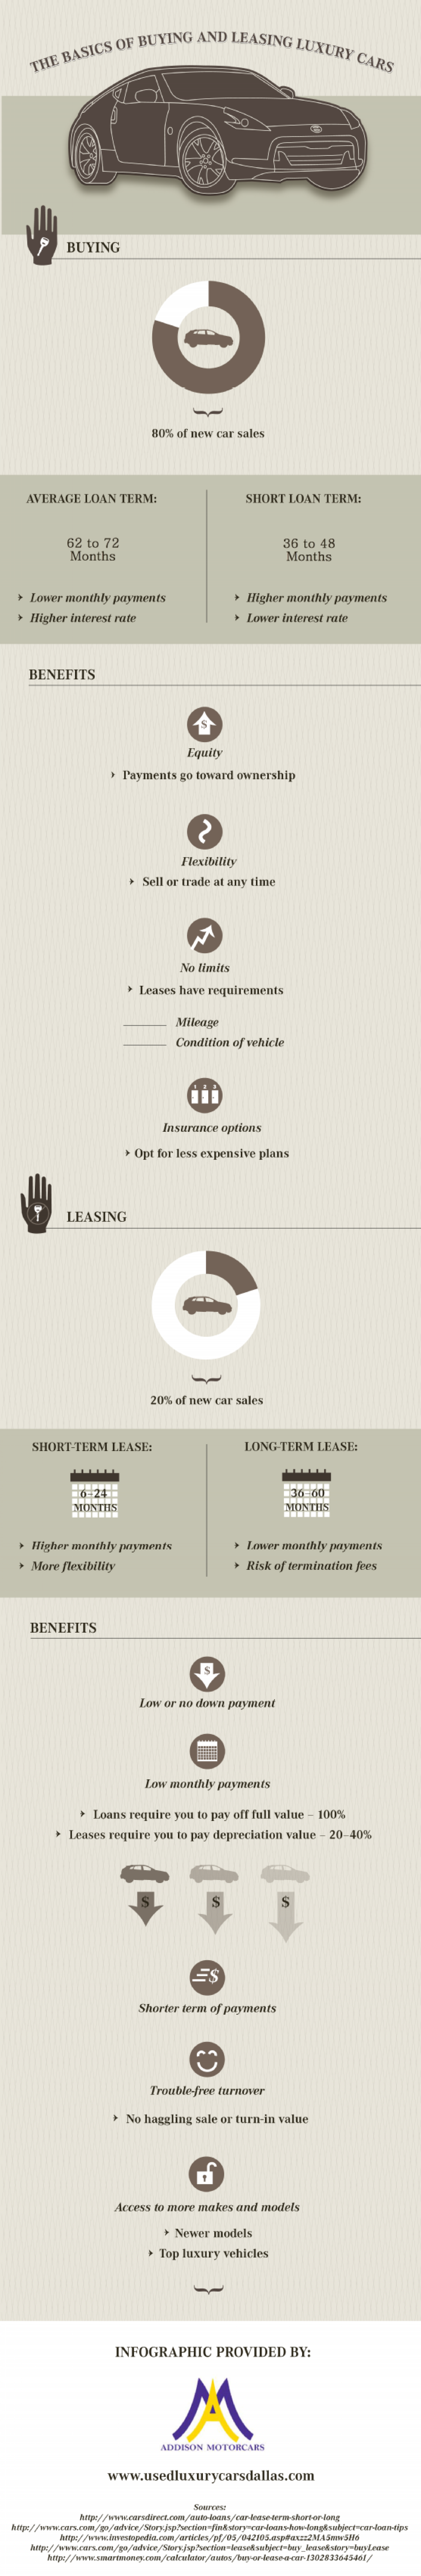 The Basics of Buying and Leasing Luxury Cars Infographic